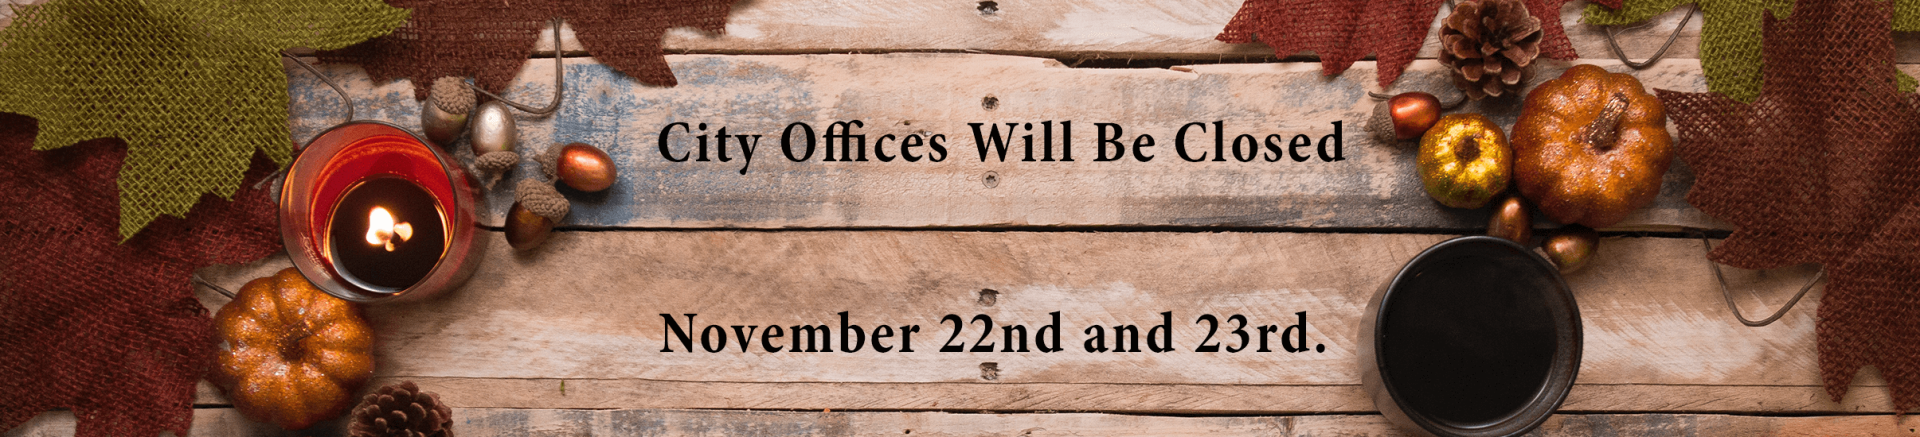 City Offices Closed Nov 22 and 23